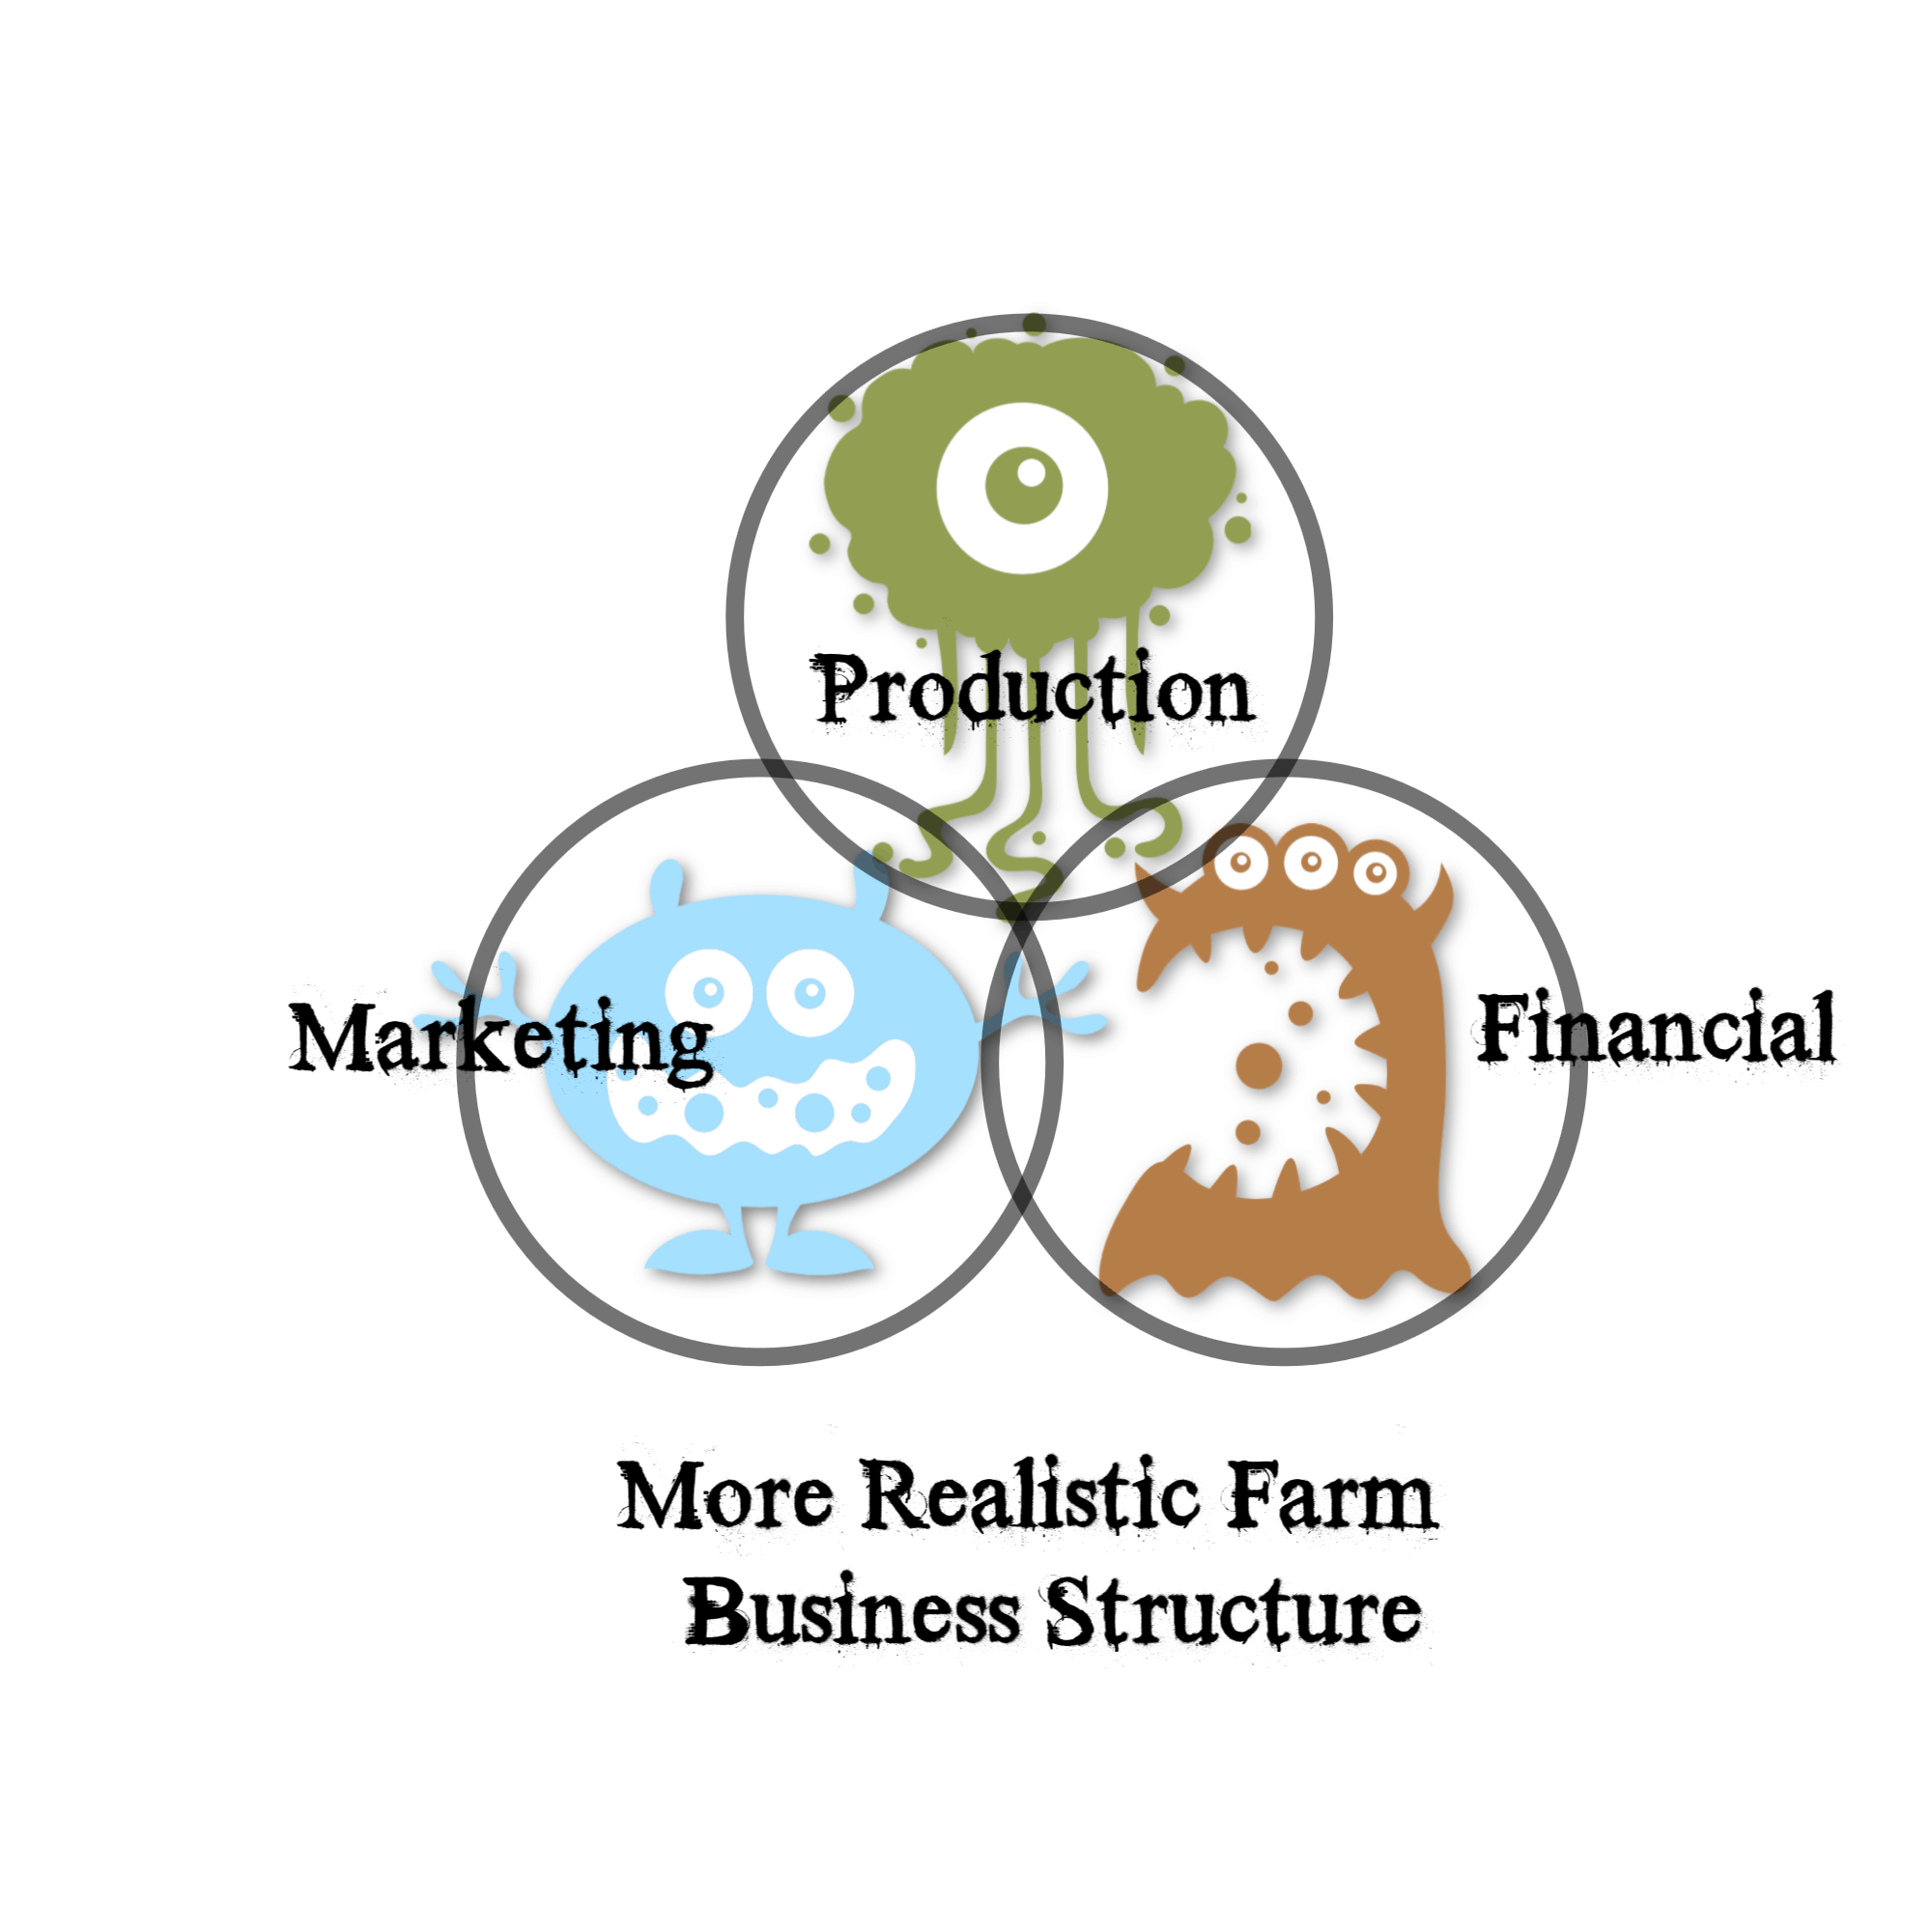 hight resolution of here s a slightly more realistic version of a generic farm business structure